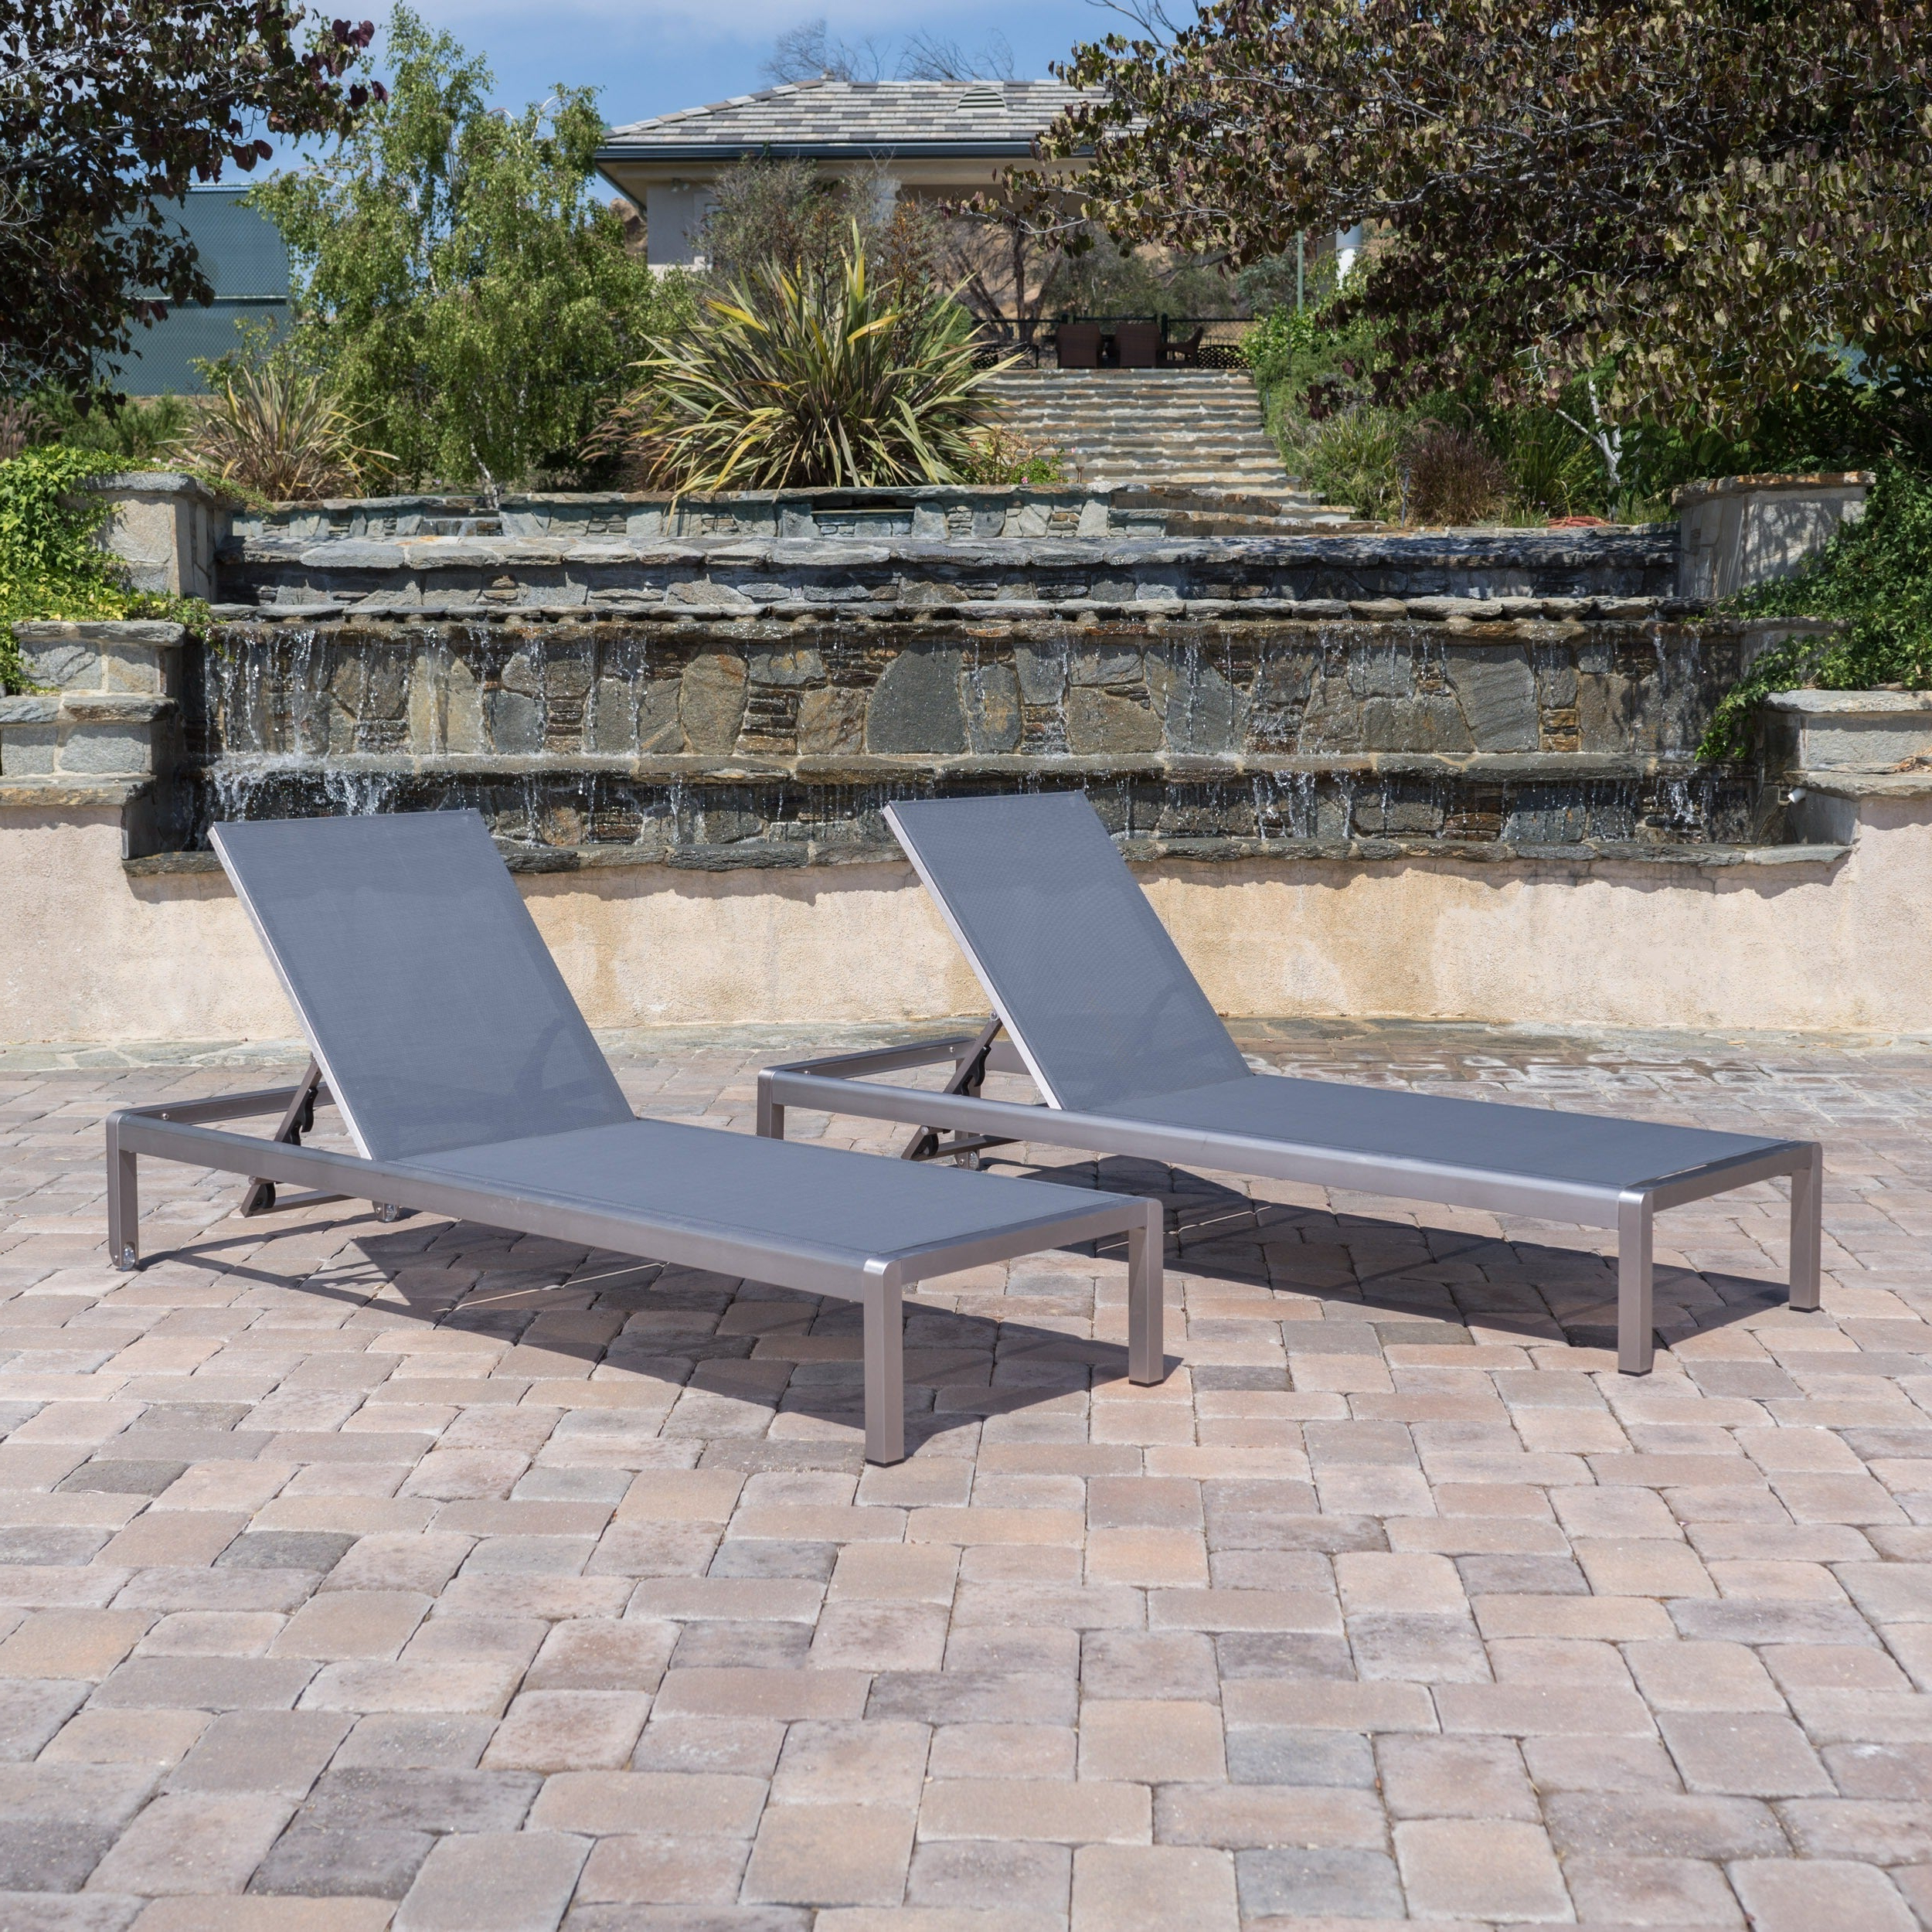 Widely Used Cape Coral Outdoor Aluminum Adjustable Chaise Lounge (Set Of 2) Christopher Knight Home Throughout Cape Coral Outdoor Aluminum Mesh Chaise Lounges (View 25 of 25)